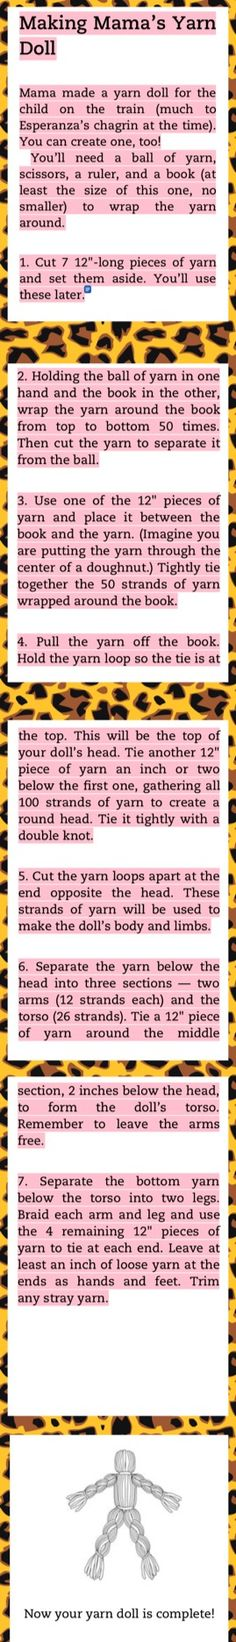 How to make a yarn doll *from Esperanza Rising*